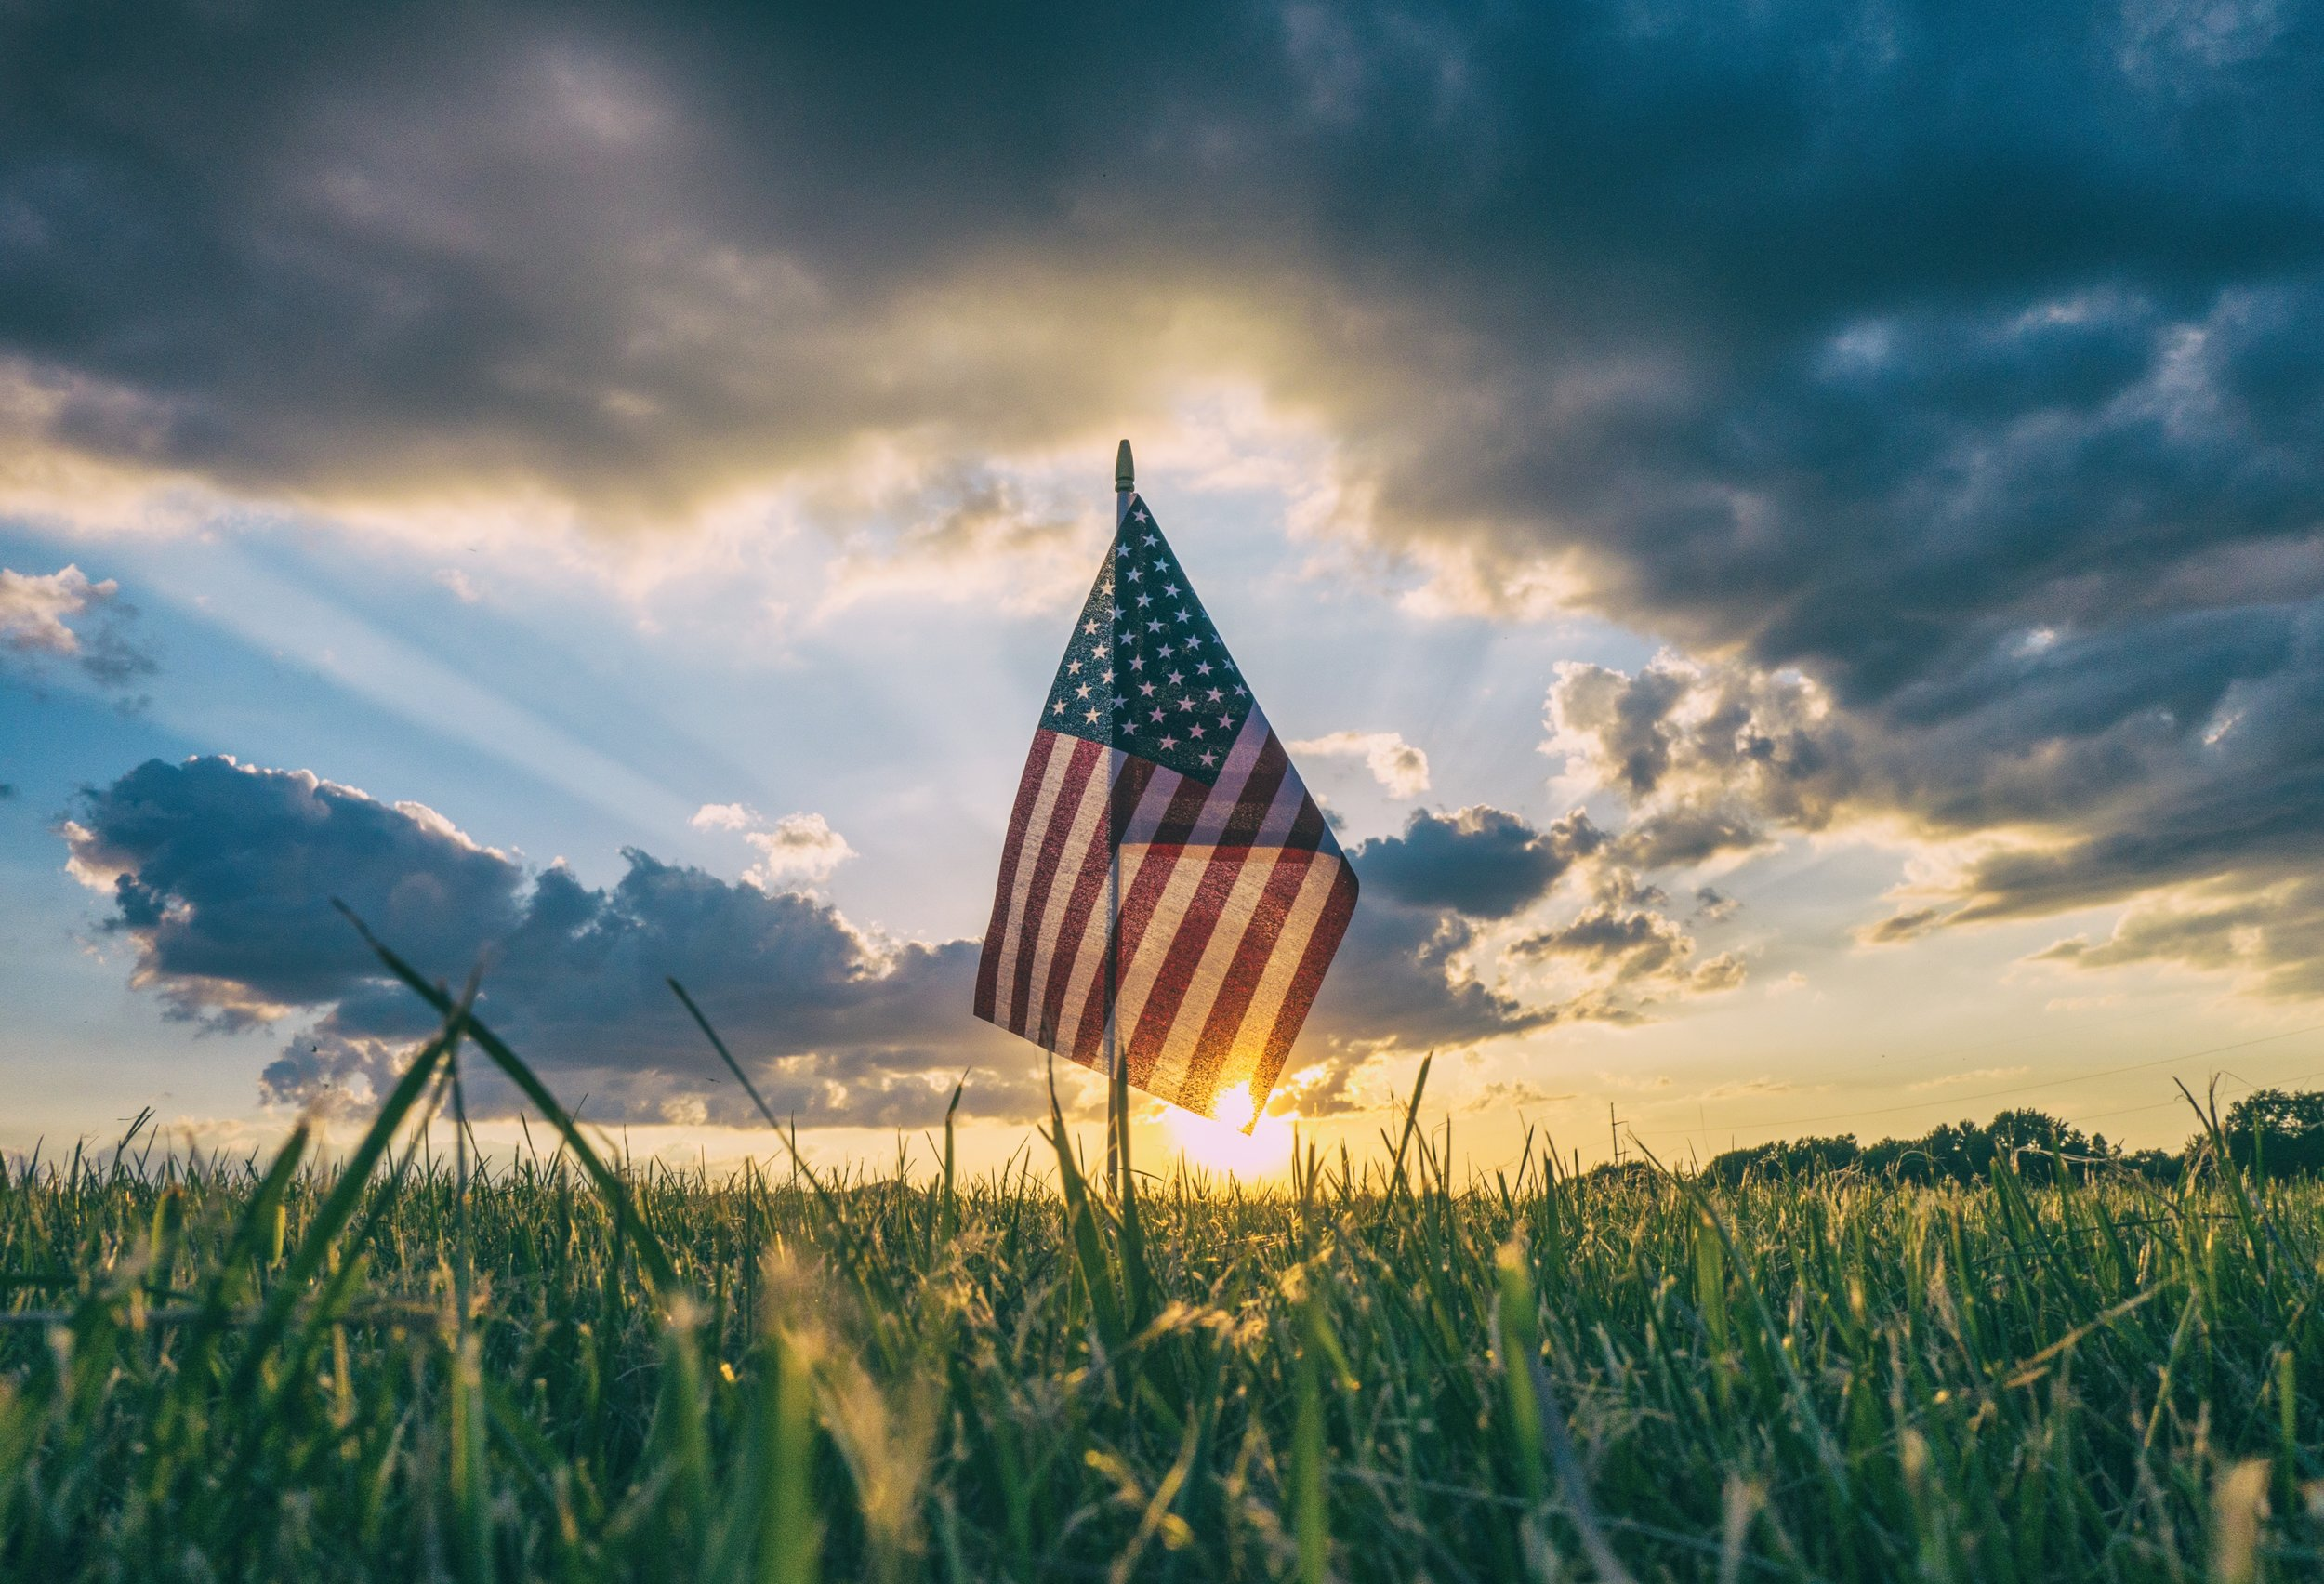 THE TOWN HALL WILL BE CLOSED MONDAY MAY 27TH TO OBSERVE MEMORIAL DAY      THE NORTH CANAAN PARADE IS ON MONDAY MAY 27TH AND WILL LEAVE THE TOWN HALL PARKING LOT AT 10:30 AM., PROCEEDING TO WEST MAIN STREET THEN UP MAIN STREET TO THE DOUGHBOY.